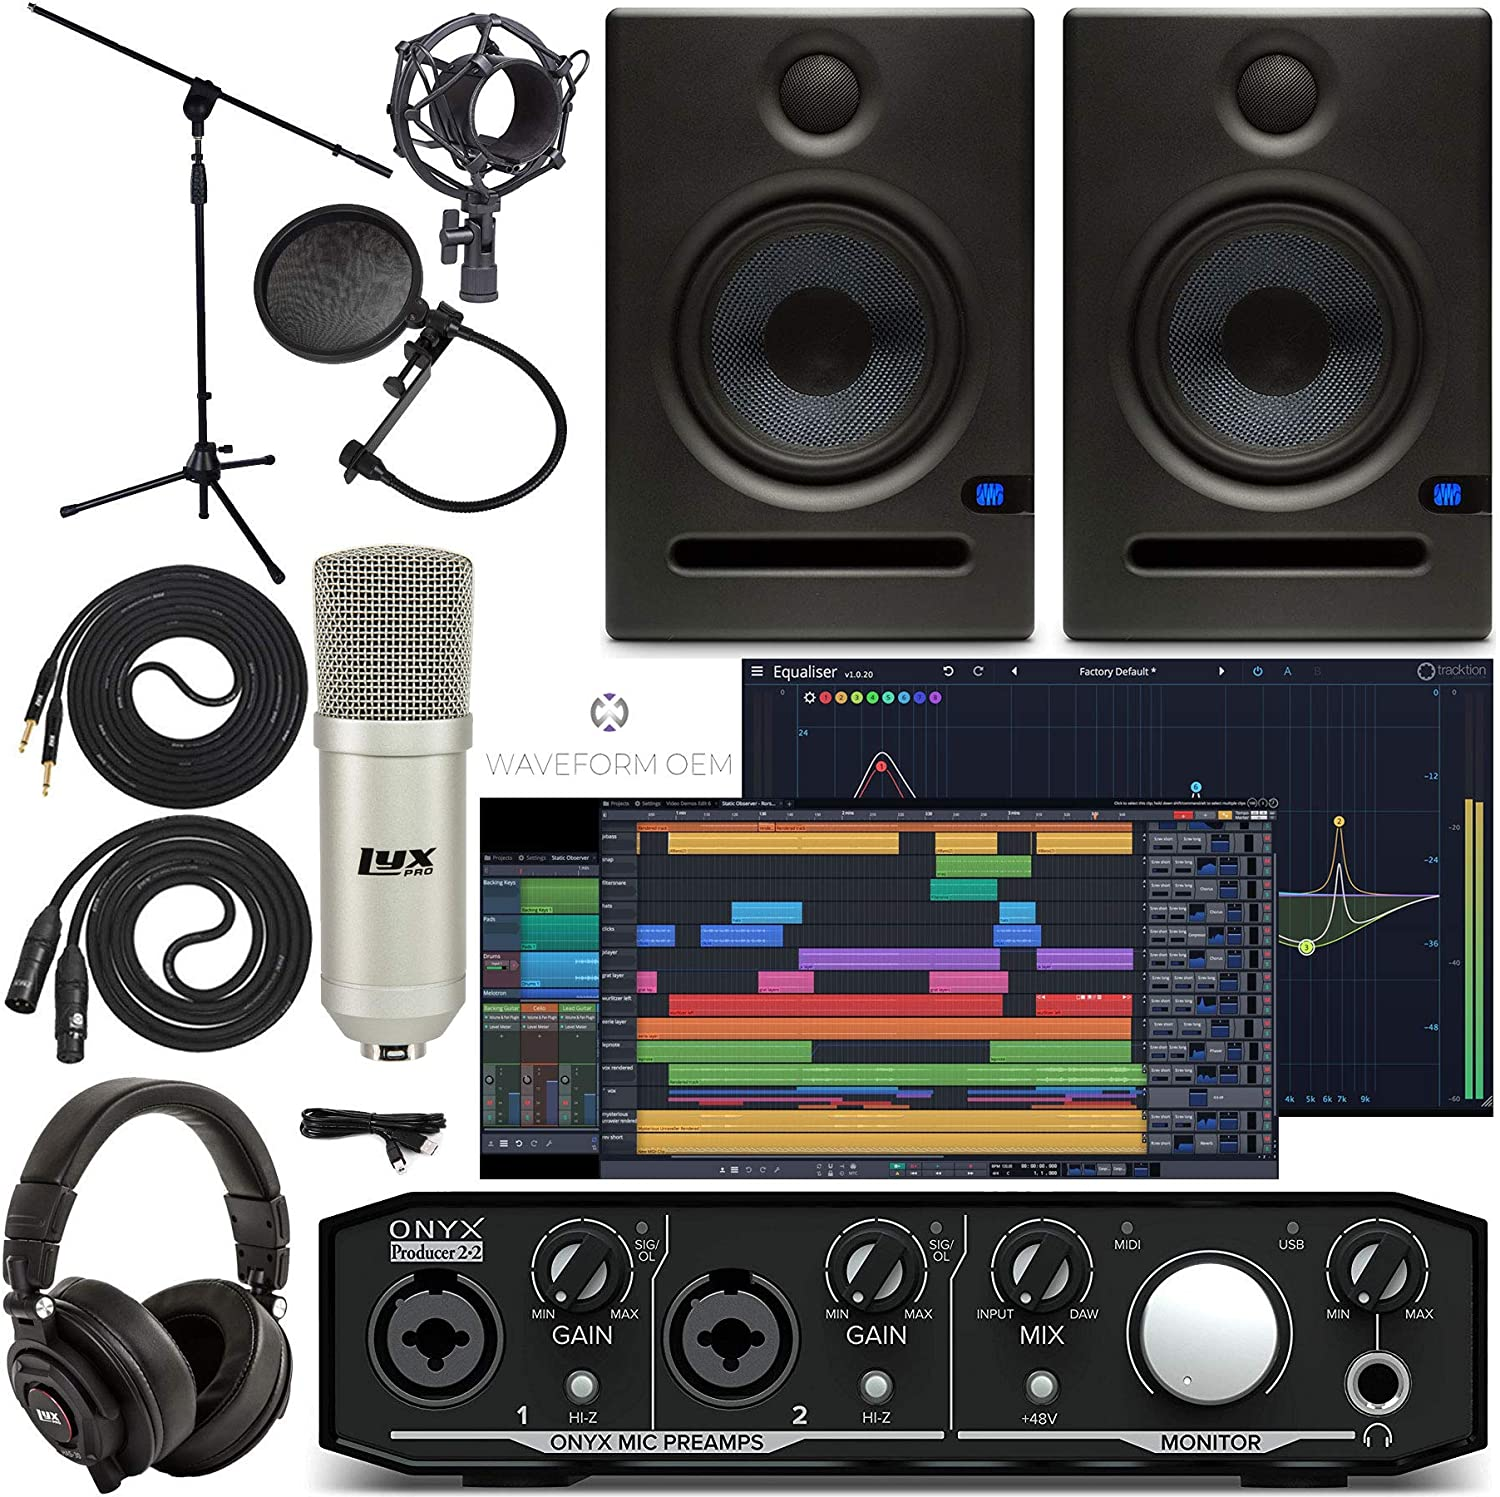 Mackie Onyx Producer 2-2 Audio/Midi interface With Pro Tools First/Tracktion Music Production Software, Eris E5 Pair Studio Monitors, Condenser Studio Microphone, XLR, Headphones, Mic Stand